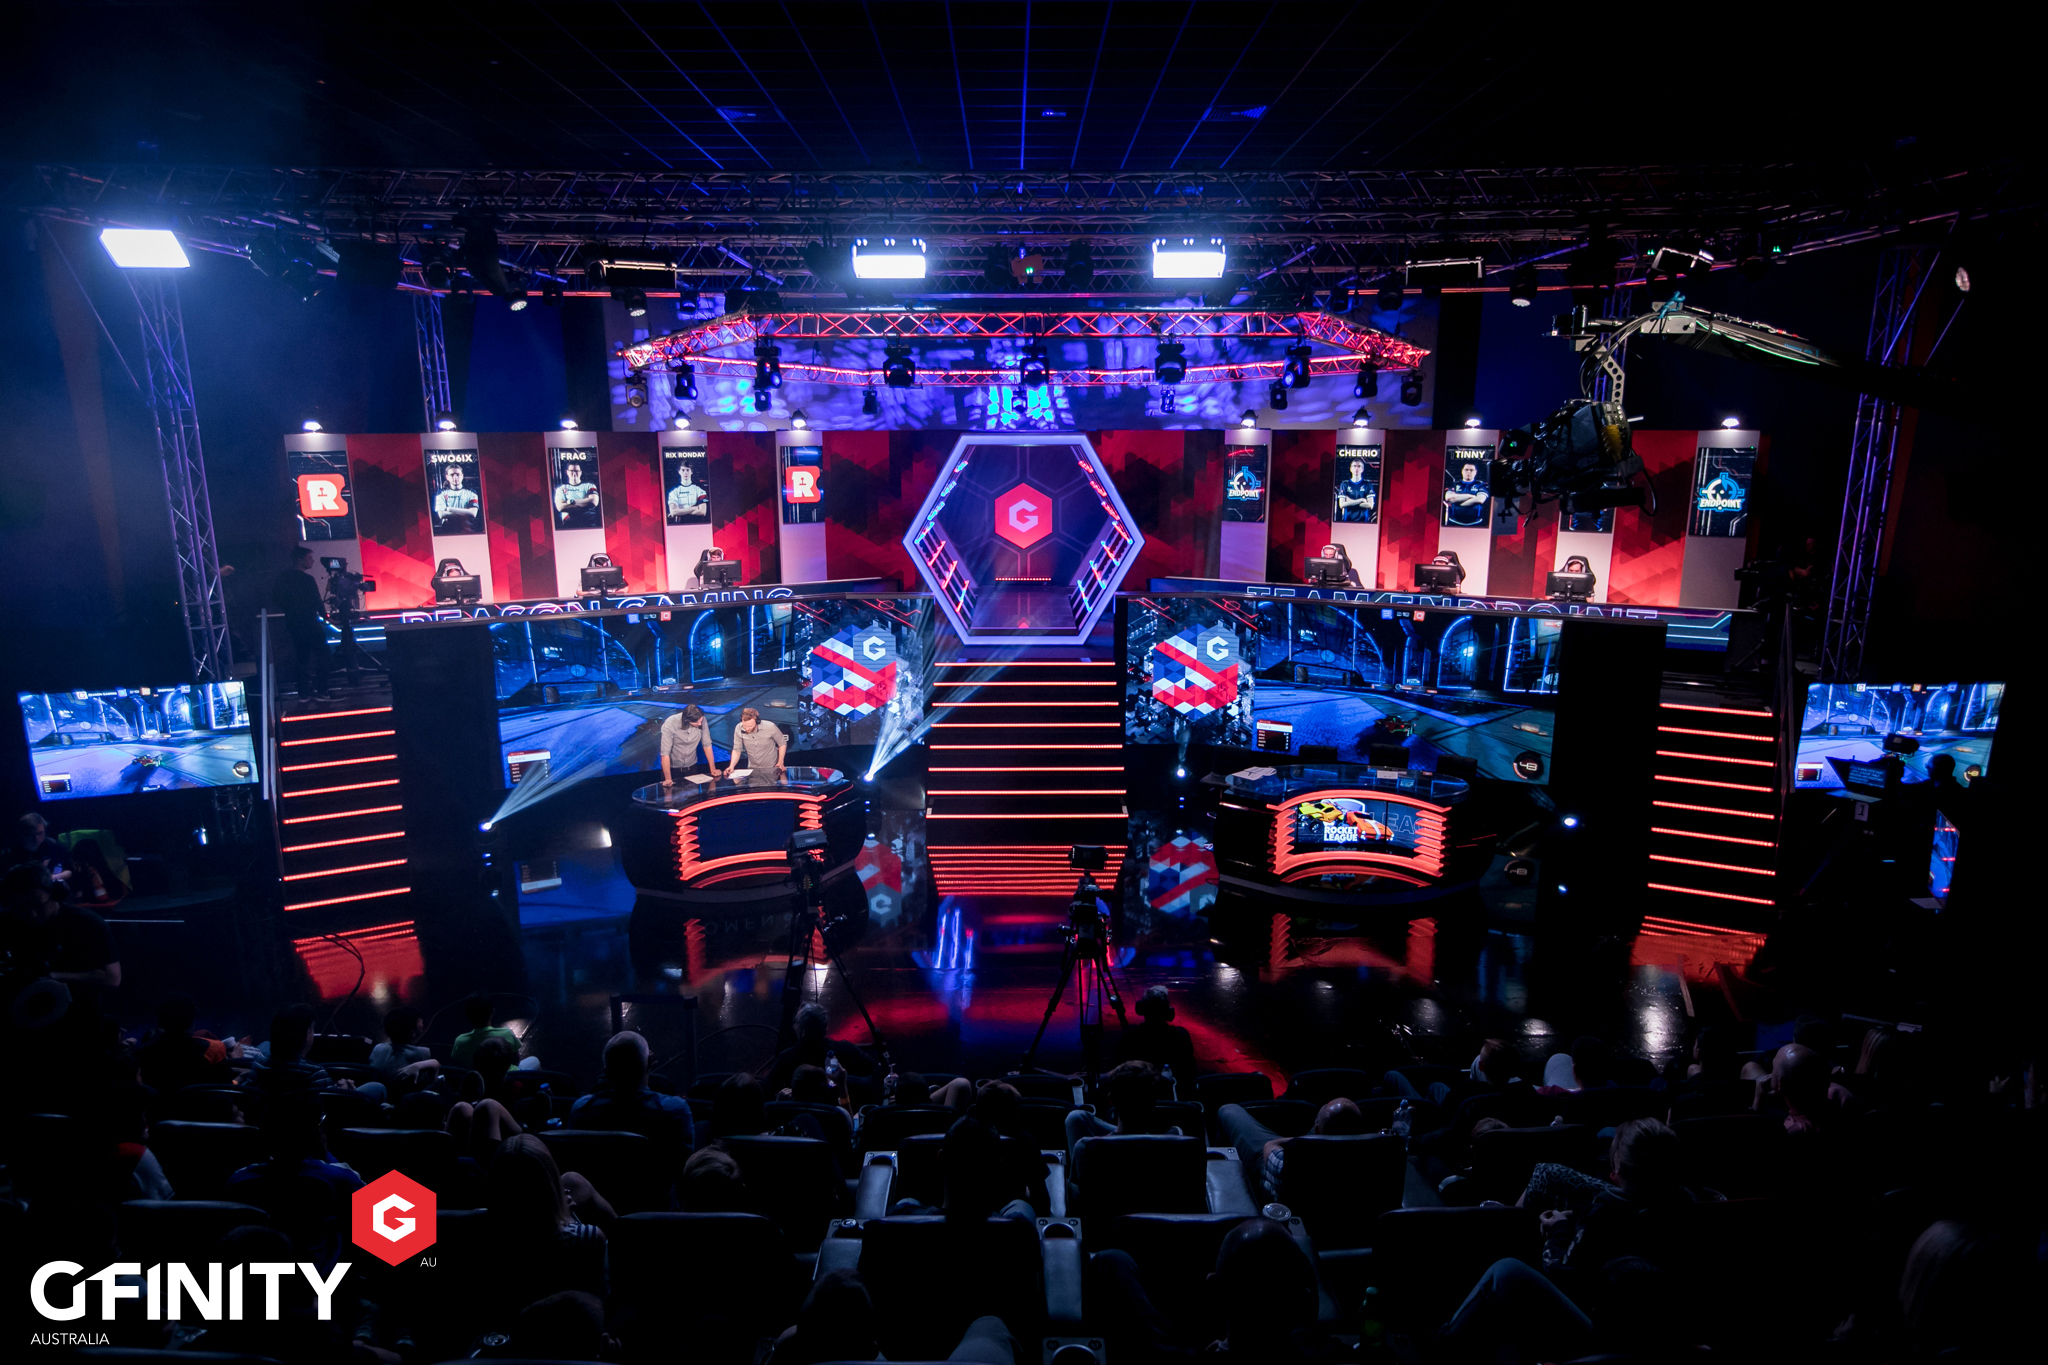 Gfinity In Australia (Photo: Joe Brady)